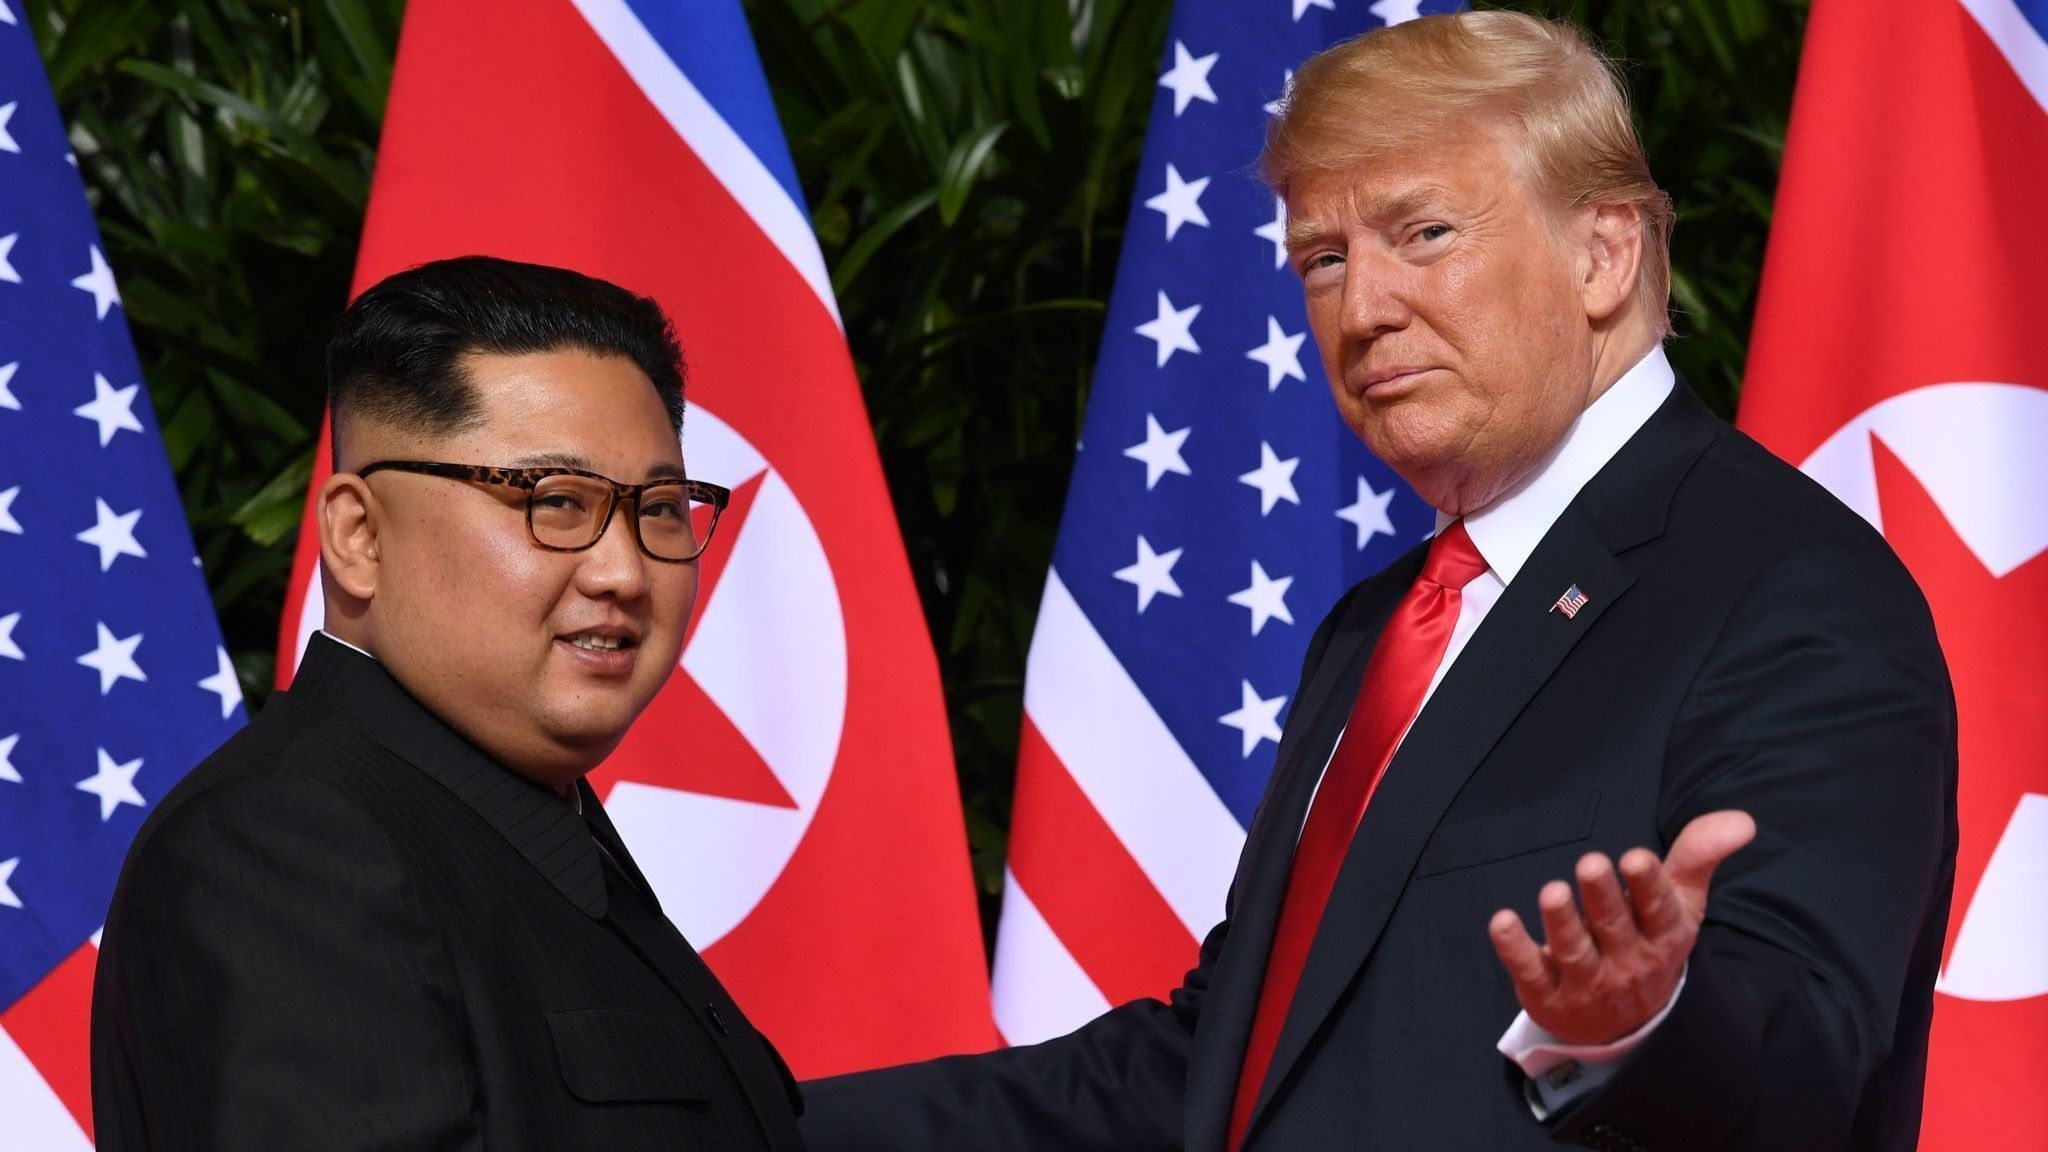 FILES-US-NKOREA-TRUMP-KIM